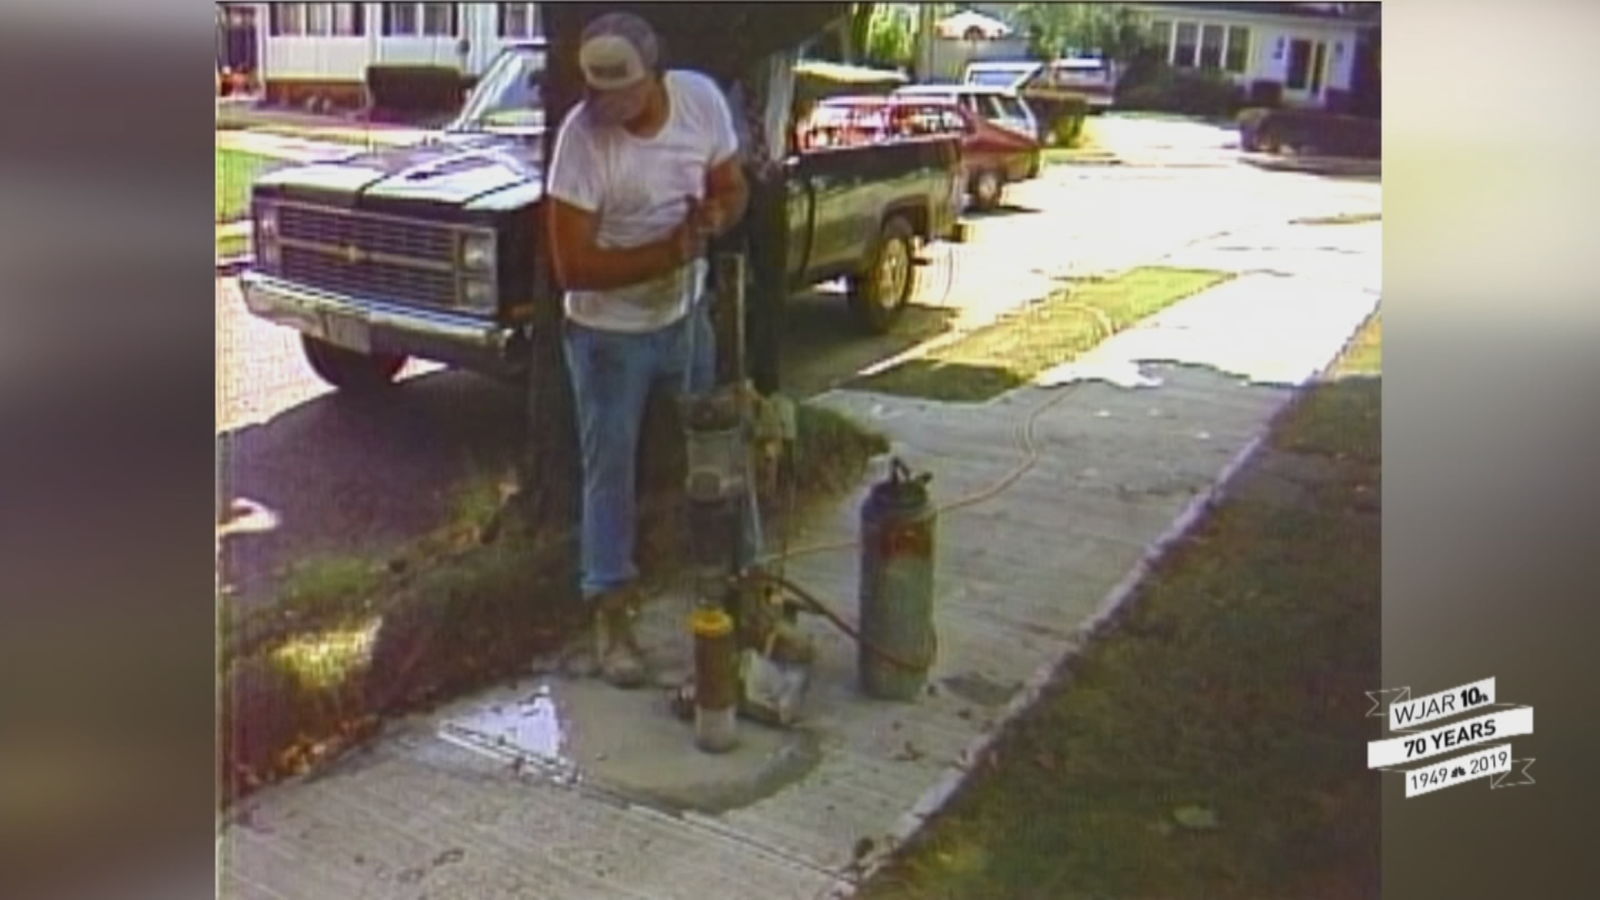 Investigators drilled concrete out of sidewalks to check its thickness during a corruption investigation in the 1980s. (WJAR)